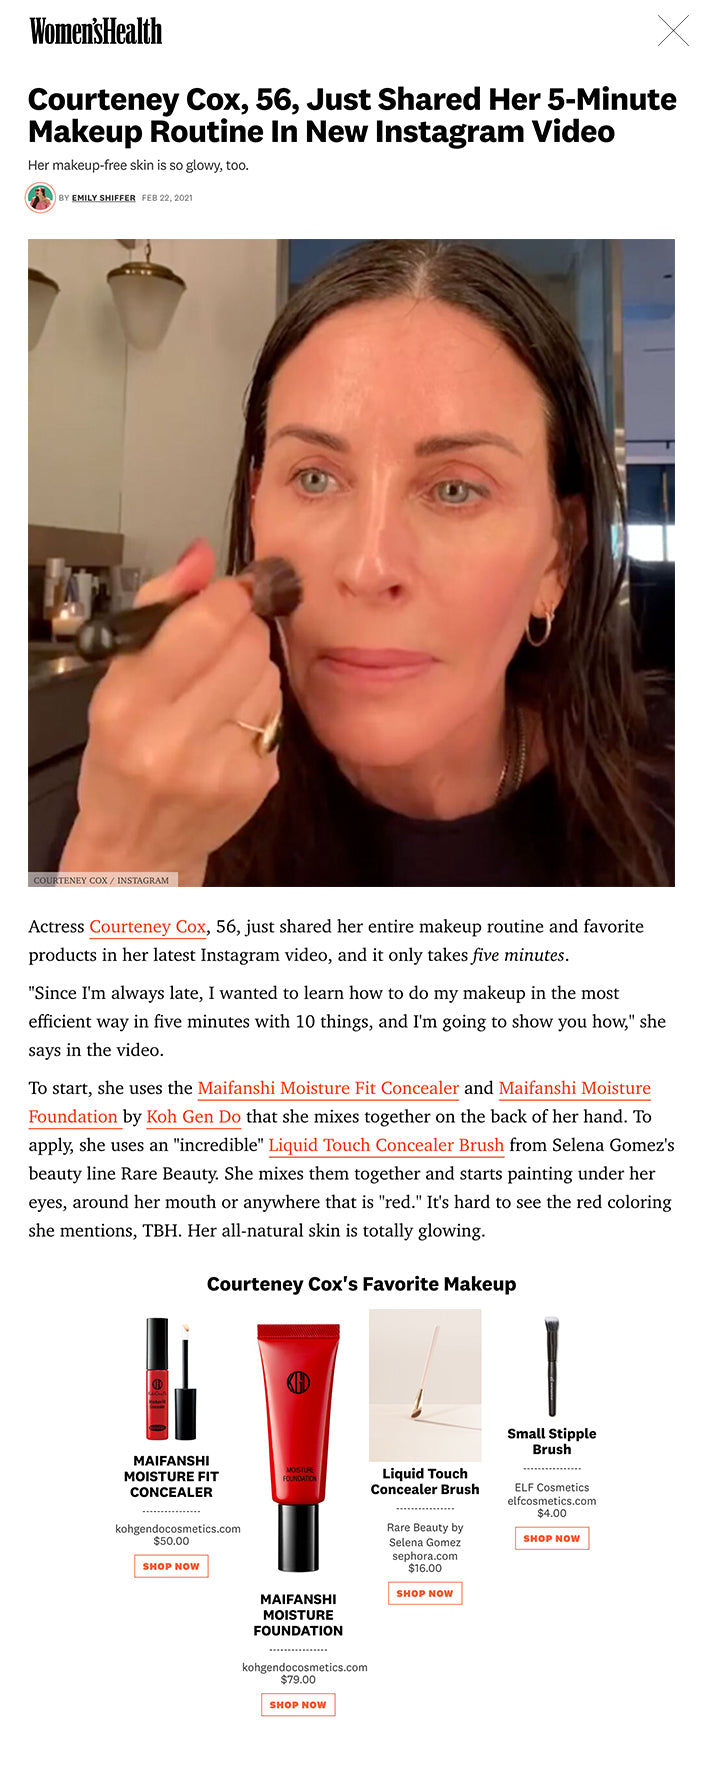 """Actress Courteney Cox, 56, just shared her entire makeup routine and favorite products in her latest Instagram video, and it only takes five minutes.  """"Since I'm always late, I wanted to learn how to do my makeup in the most efficient way in five minutes with 10 things, and I'm going to show you how,"""" she says in the video.  To start, she uses the Maifanshi Moisture Fit Concealer and Maifanshi Moisture Foundation by Koh Gen Do that she mixes together on the back of her hand. To apply, she uses an """"incredible"""" Liquid Touch Concealer Brush from Selena Gomez's beauty line Rare Beauty. She mixes them together and starts painting under her eyes, around her mouth or anywhere that is """"red."""" It's hard to see the red coloring she mentions, TBH. Her all-natural skin is totally glowing.  MORE FROM WOMEN'S HEALTH Peyton List Does A """"Body Scan""""    WATCH: Peyton List Does A """"Body Scan""""  This content is imported from Instagram. You may be able to find the same content in another format, or you may be able to find more information, at their web site.  ADVERTISEMENT - CONTINUE READING BELOW   After that, she uses E.l.f's Stipple Brush to apply Stila's Cream Blush that she applies on her cheeks and also uses to highlight her nose and chin. Next, she starts on her eyes with her """"favorite eye pencil"""" called Eye Kohl Intense by Tom Ford that is a bronzy color.  She says that she does a """"messy but close line towards her lashes"""" to cover up the tattooing she had done at her lash line """"a long time ago"""" that has turned blue.  """"It's this weird blue...I hate it. I don't recommend that!"""" she says.  This content is imported from {embed-name}. You may be able to find the same content in another format, or you may be able to find more information, at their web site.  Next, she takes a lighter brown color eye pencil to line her lower lashes using a NYX Slim Eye Pencil, and buffs out both her lash lines with a smaller brush to prevent harsh lines. Then she curls her lashes """"because my lashes are re"""